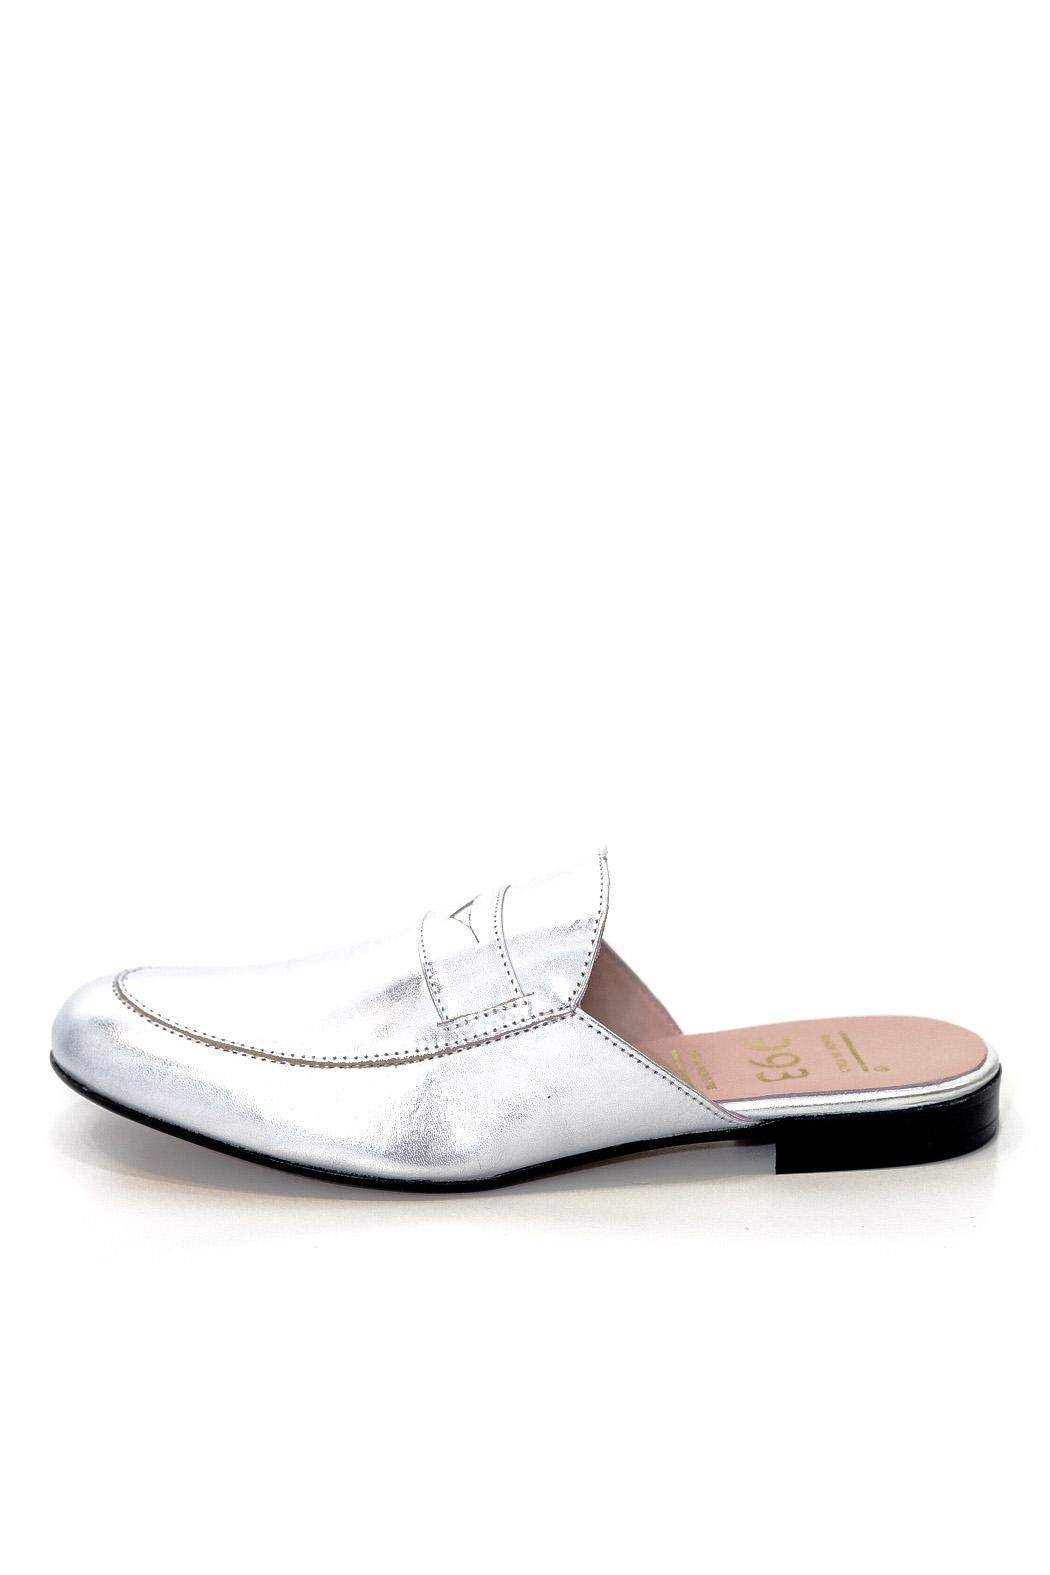 993 Silver Leather Mule Slip On - Main Image